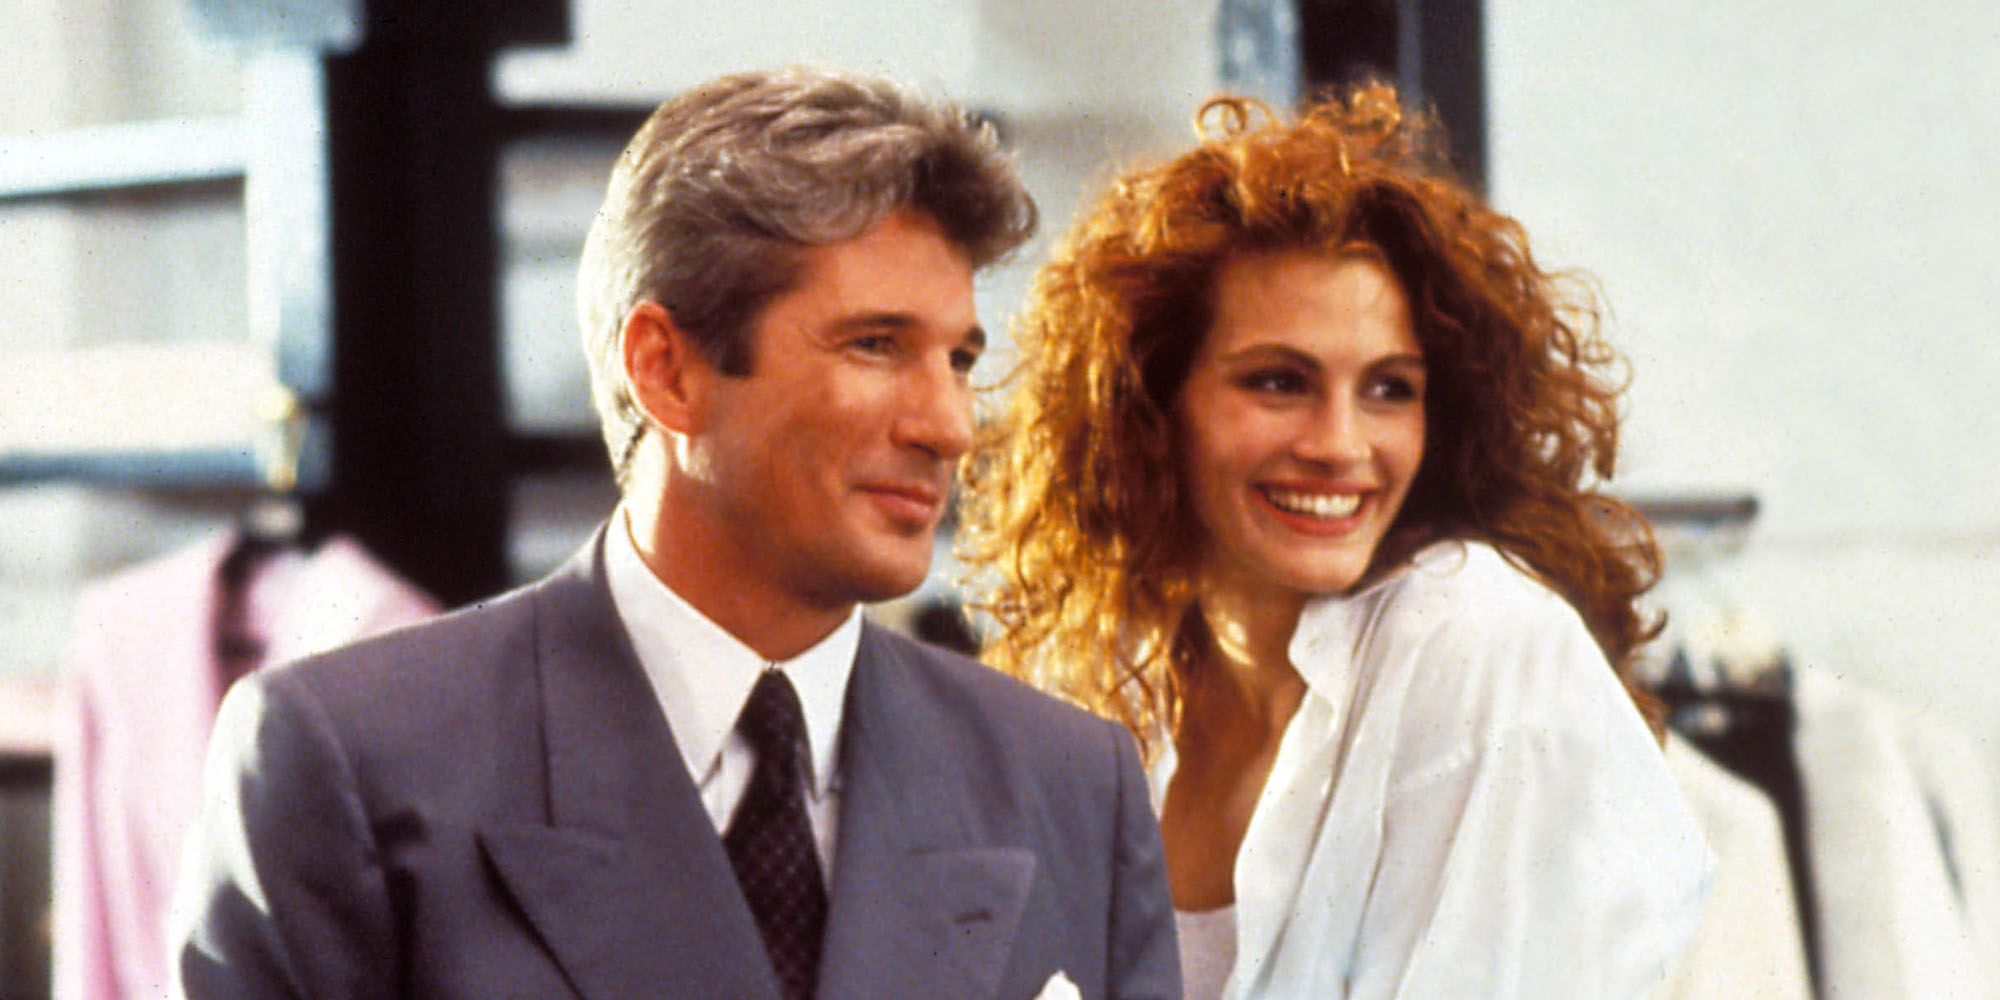 10 Things From Pretty Woman That Have Aged Poorly Screenrant